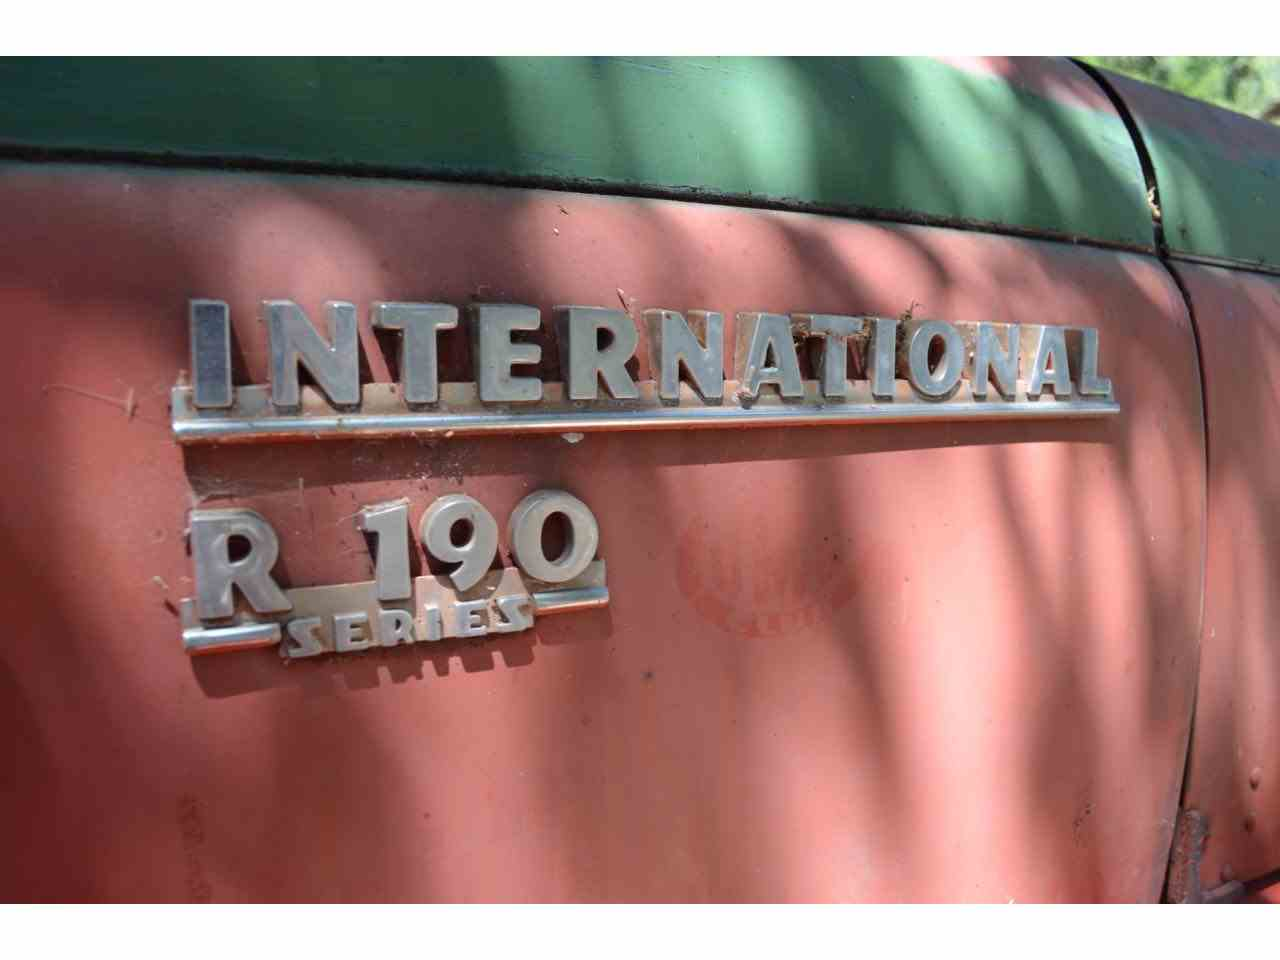 Large Picture of '53 International R-190 Offered by Spoke Motors - JRT9